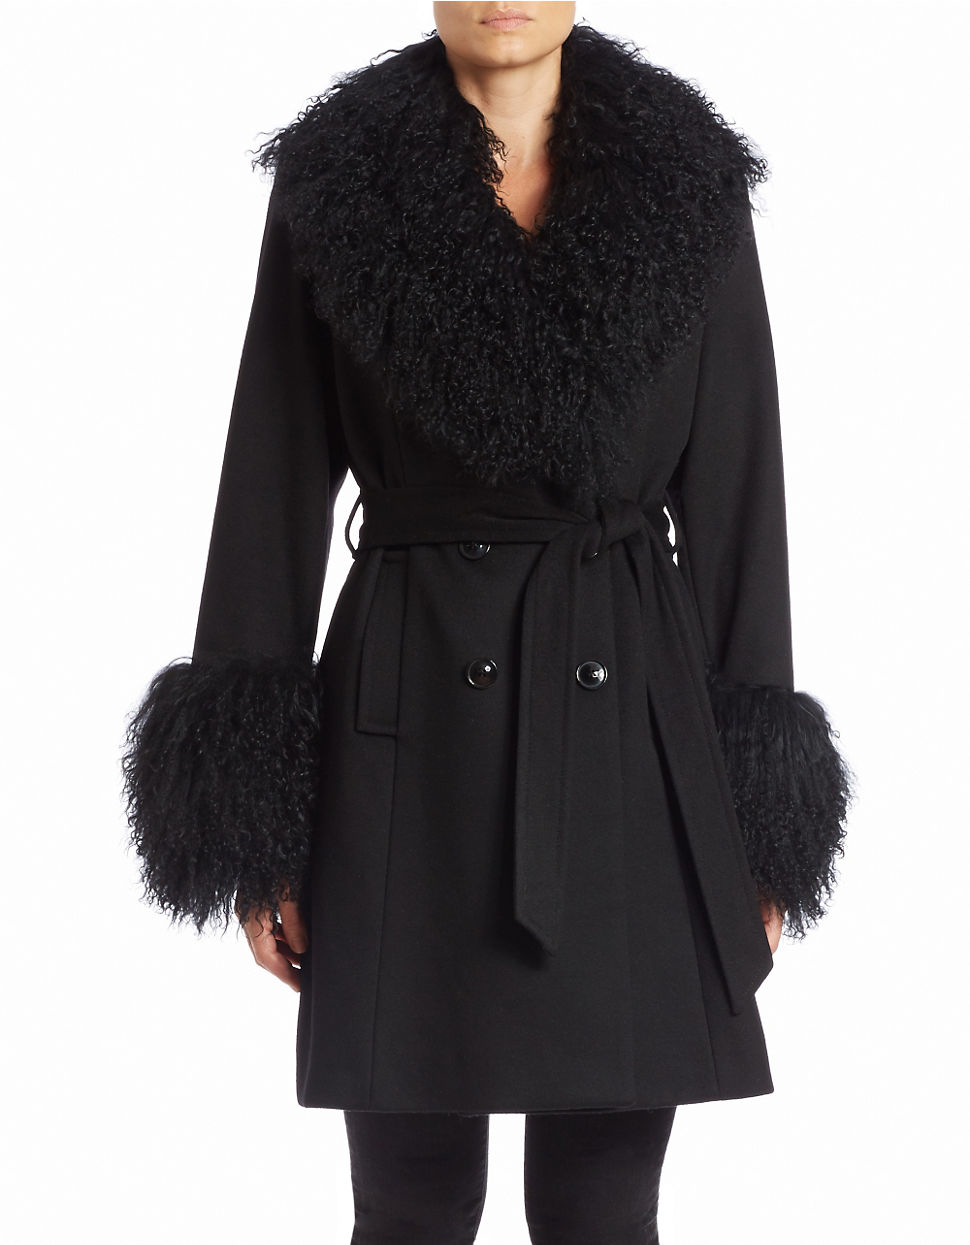 Sofia cashmere Mongolian Lamb Fur-trimmed Coat in Black | Lyst